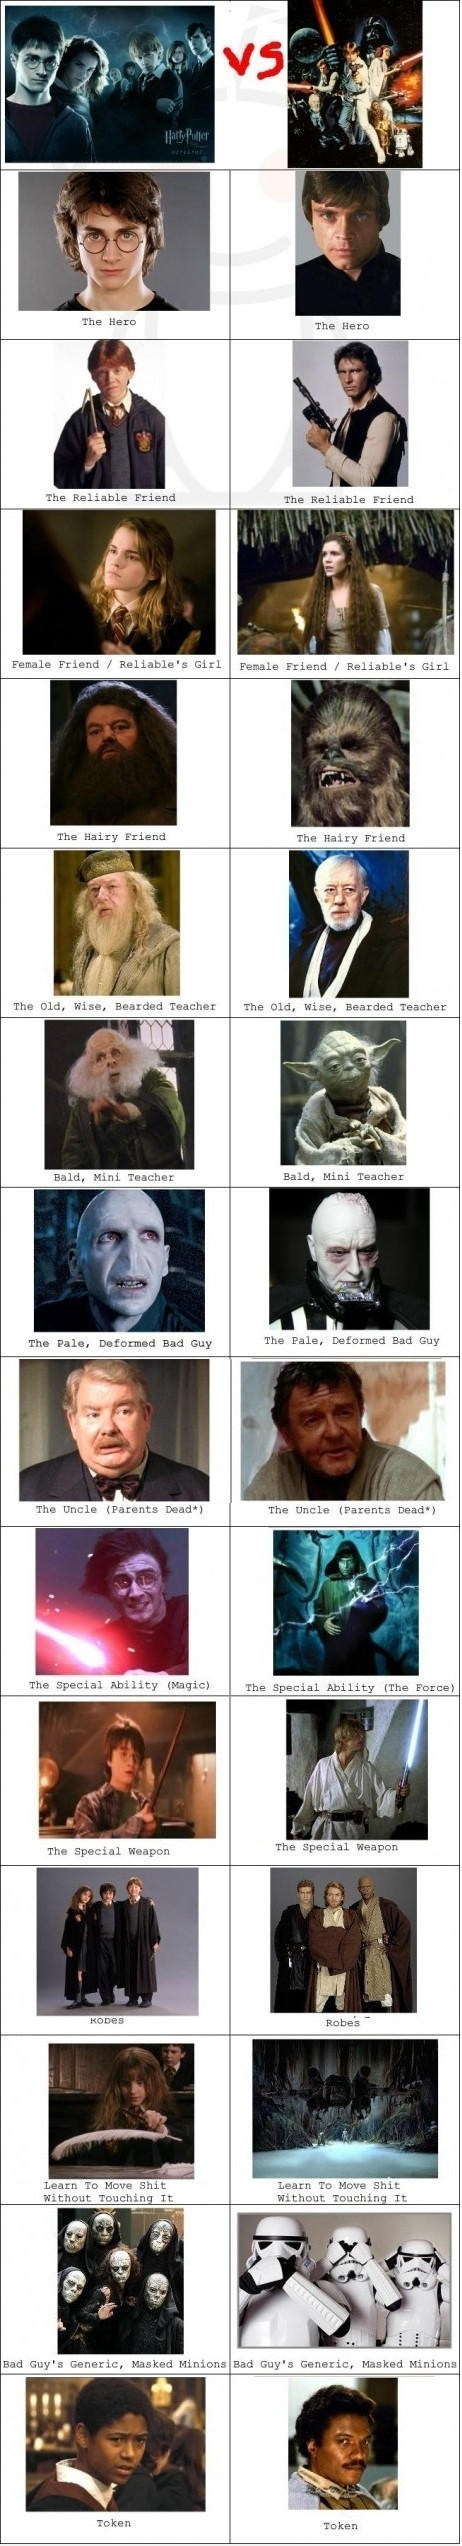 Harry Potter compared to Star Wars -   Misc